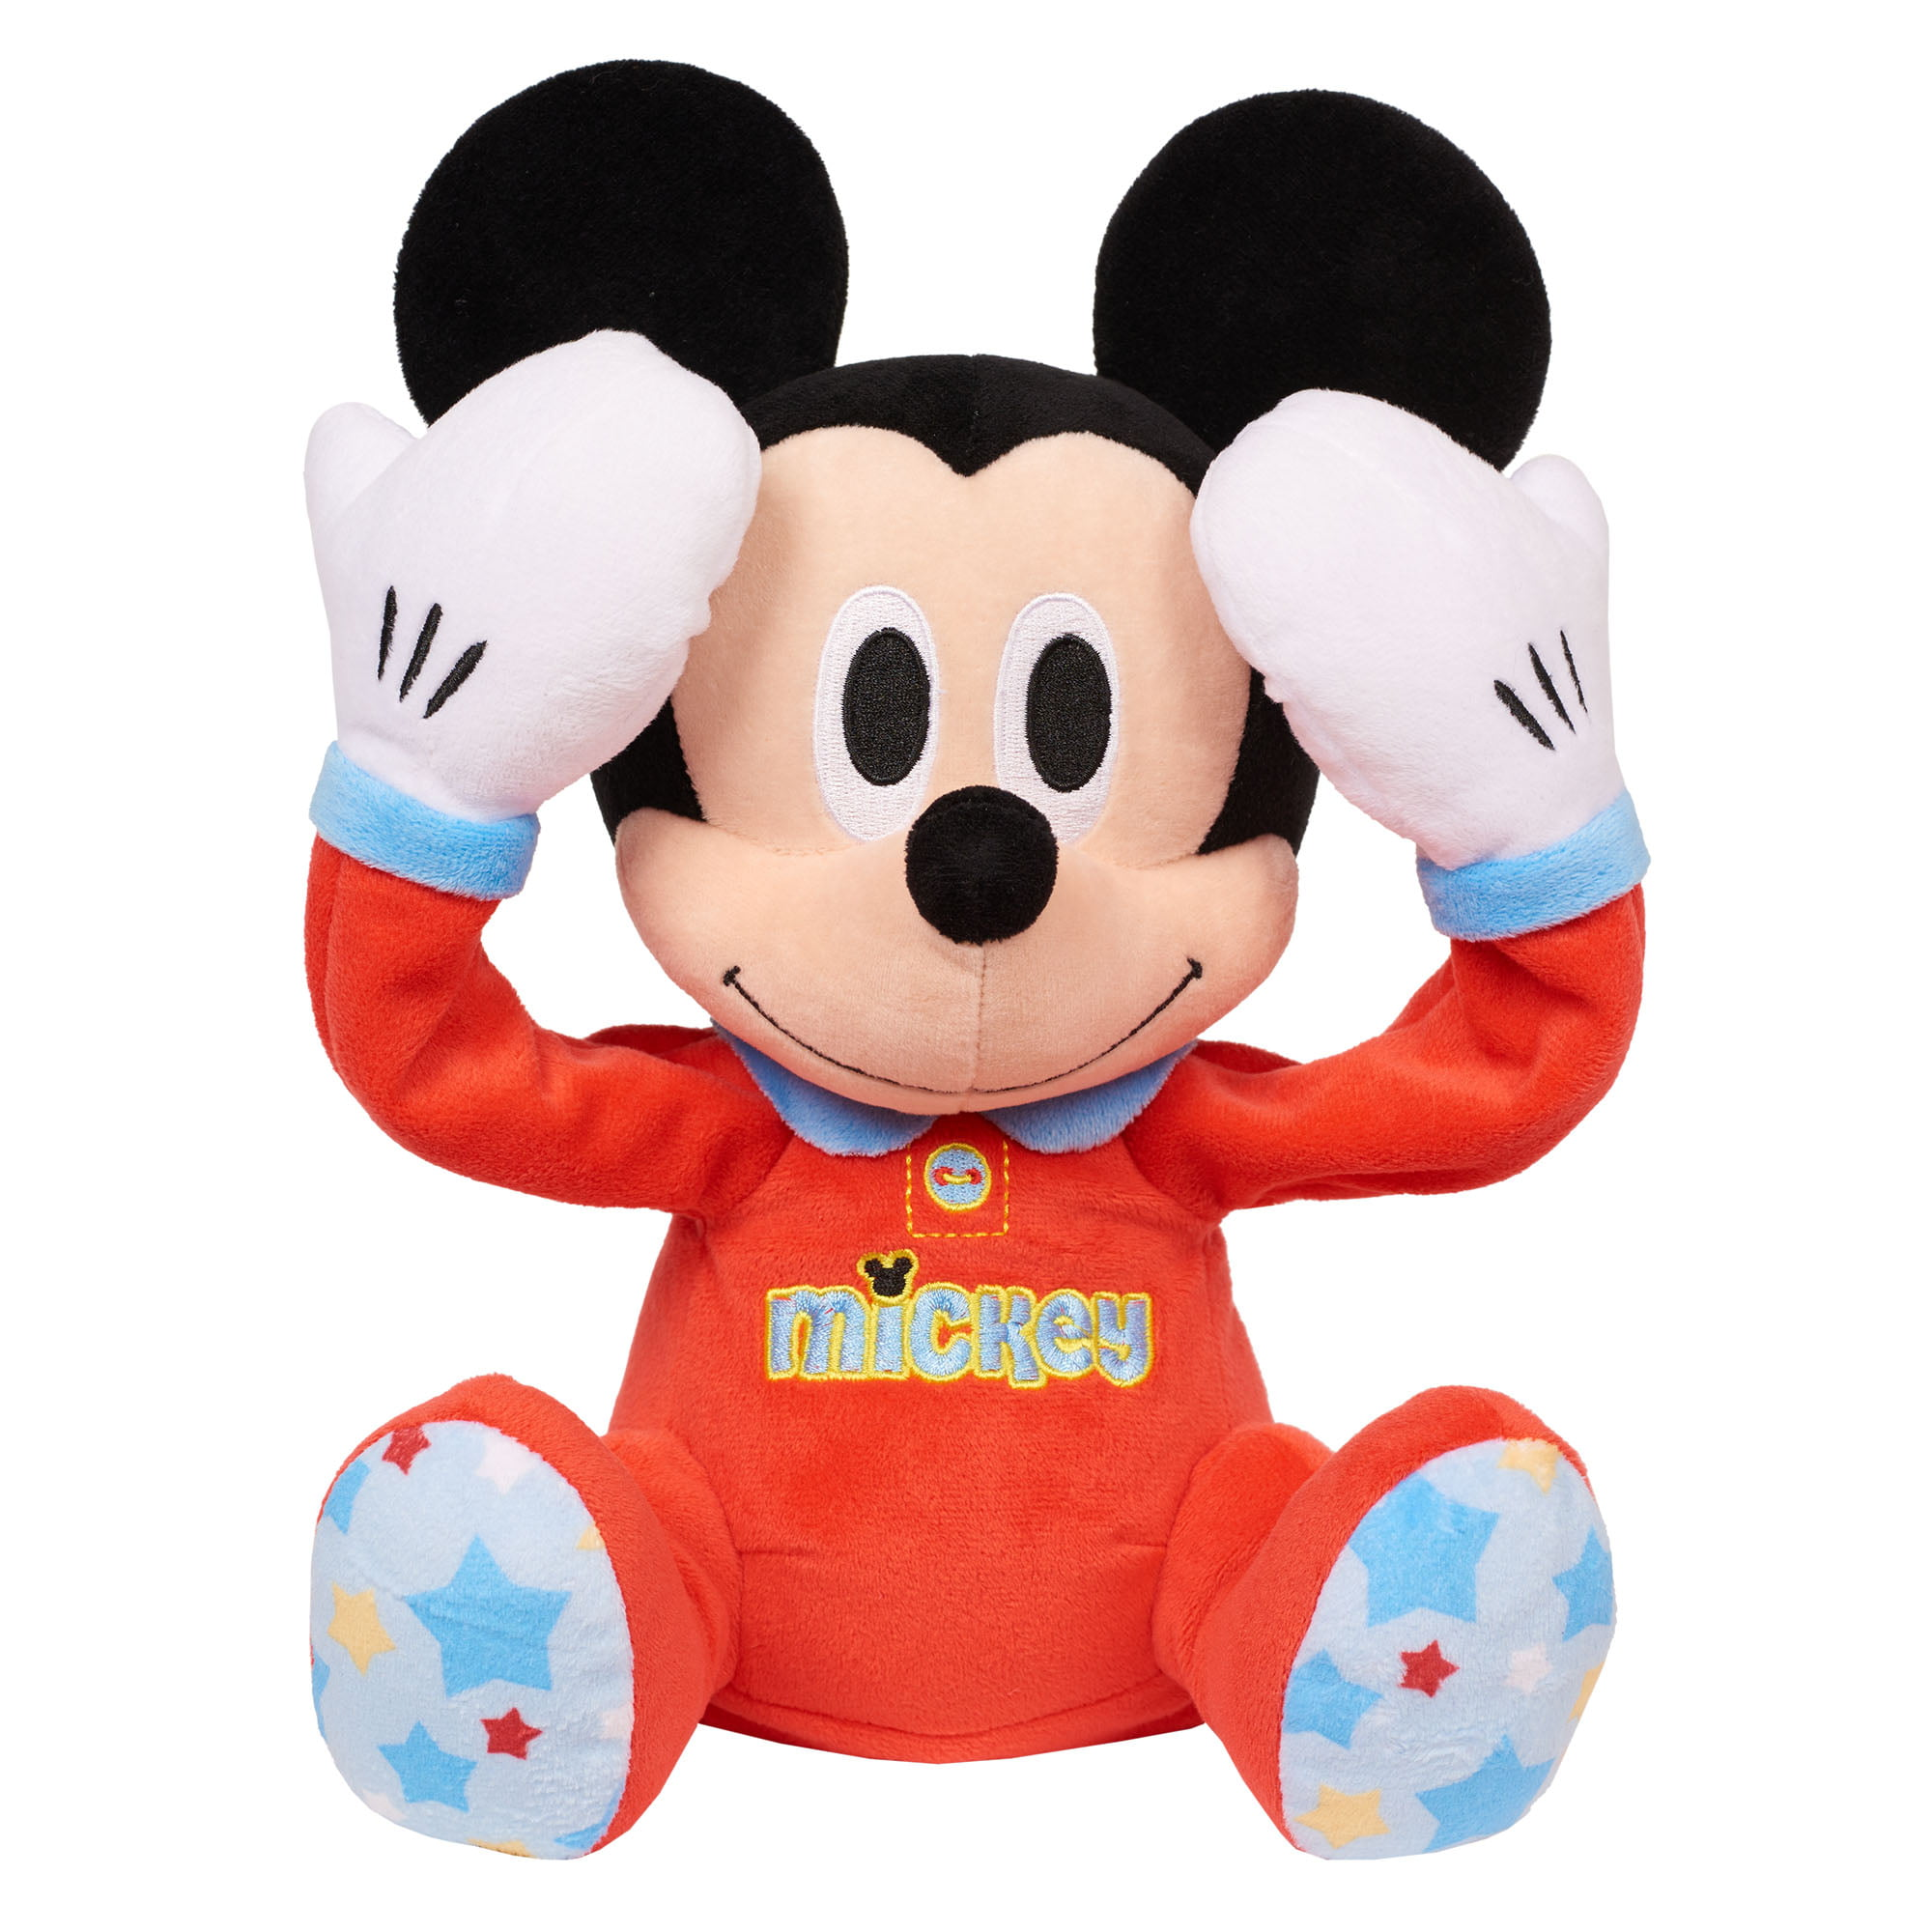 Disney Baby Peek-A-Boo Plush Mickey Mouse by Just Play